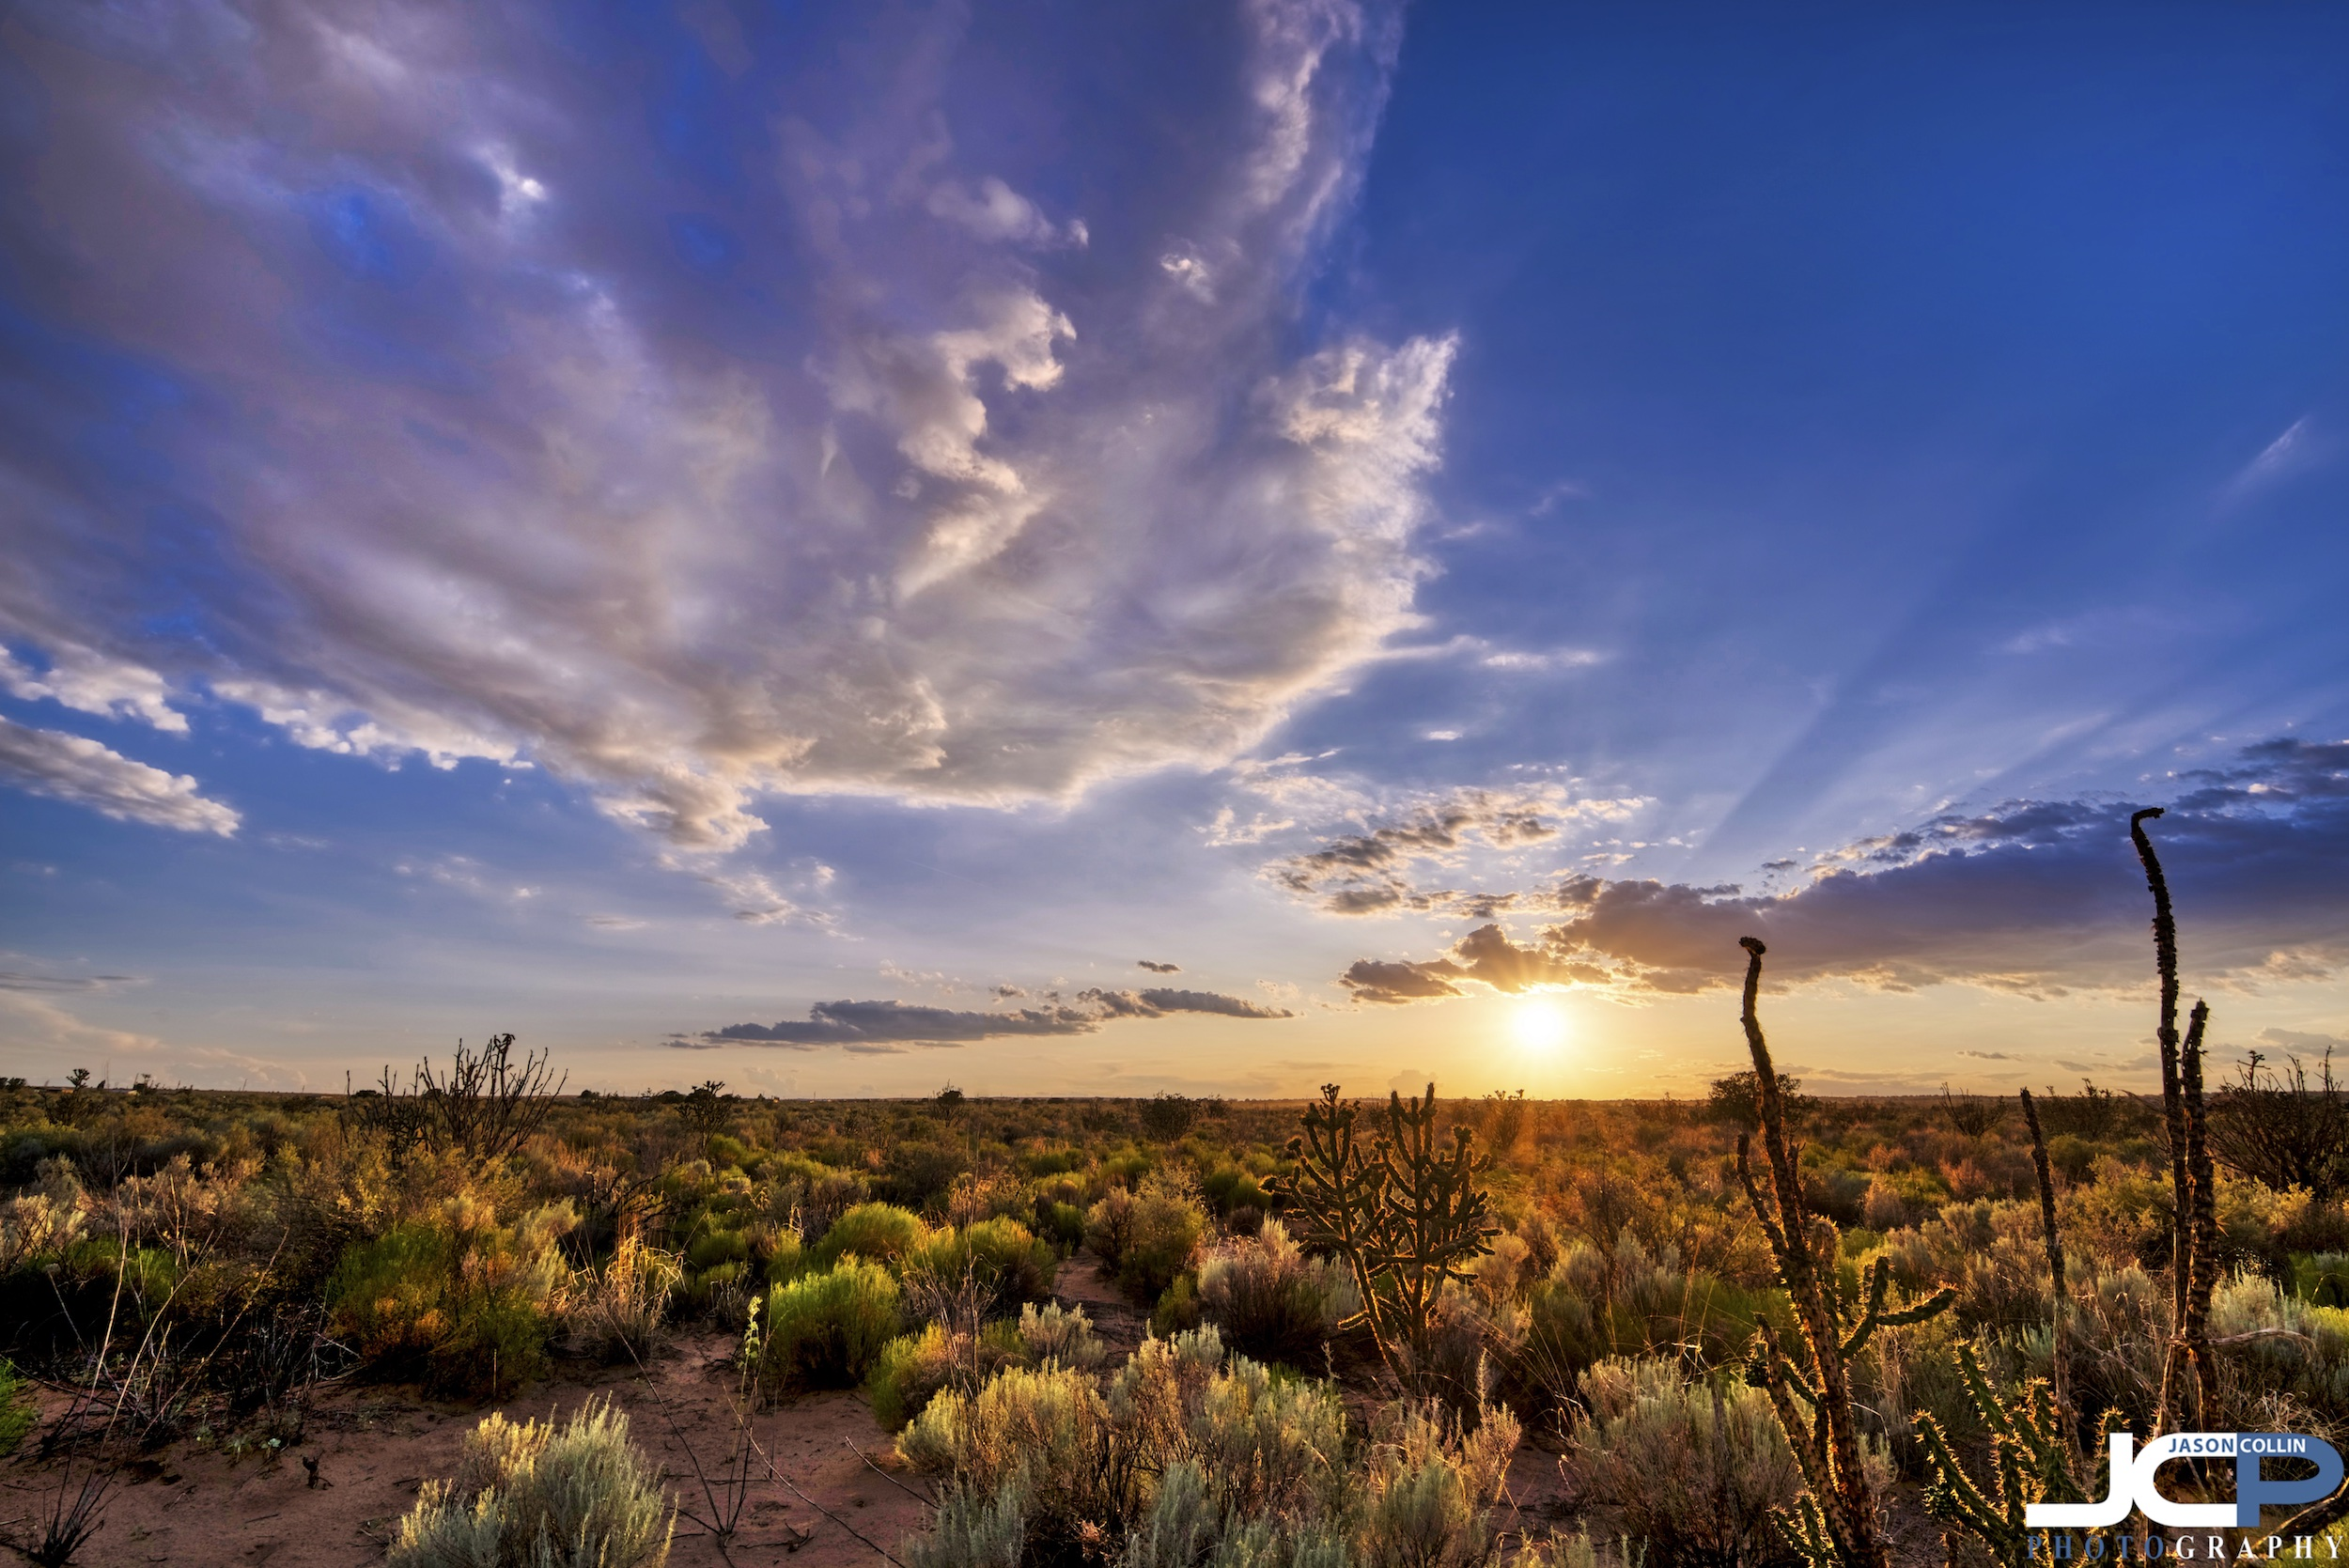 There are countless vistas like this in the high desert NW of Rio Rancho, New Mexico